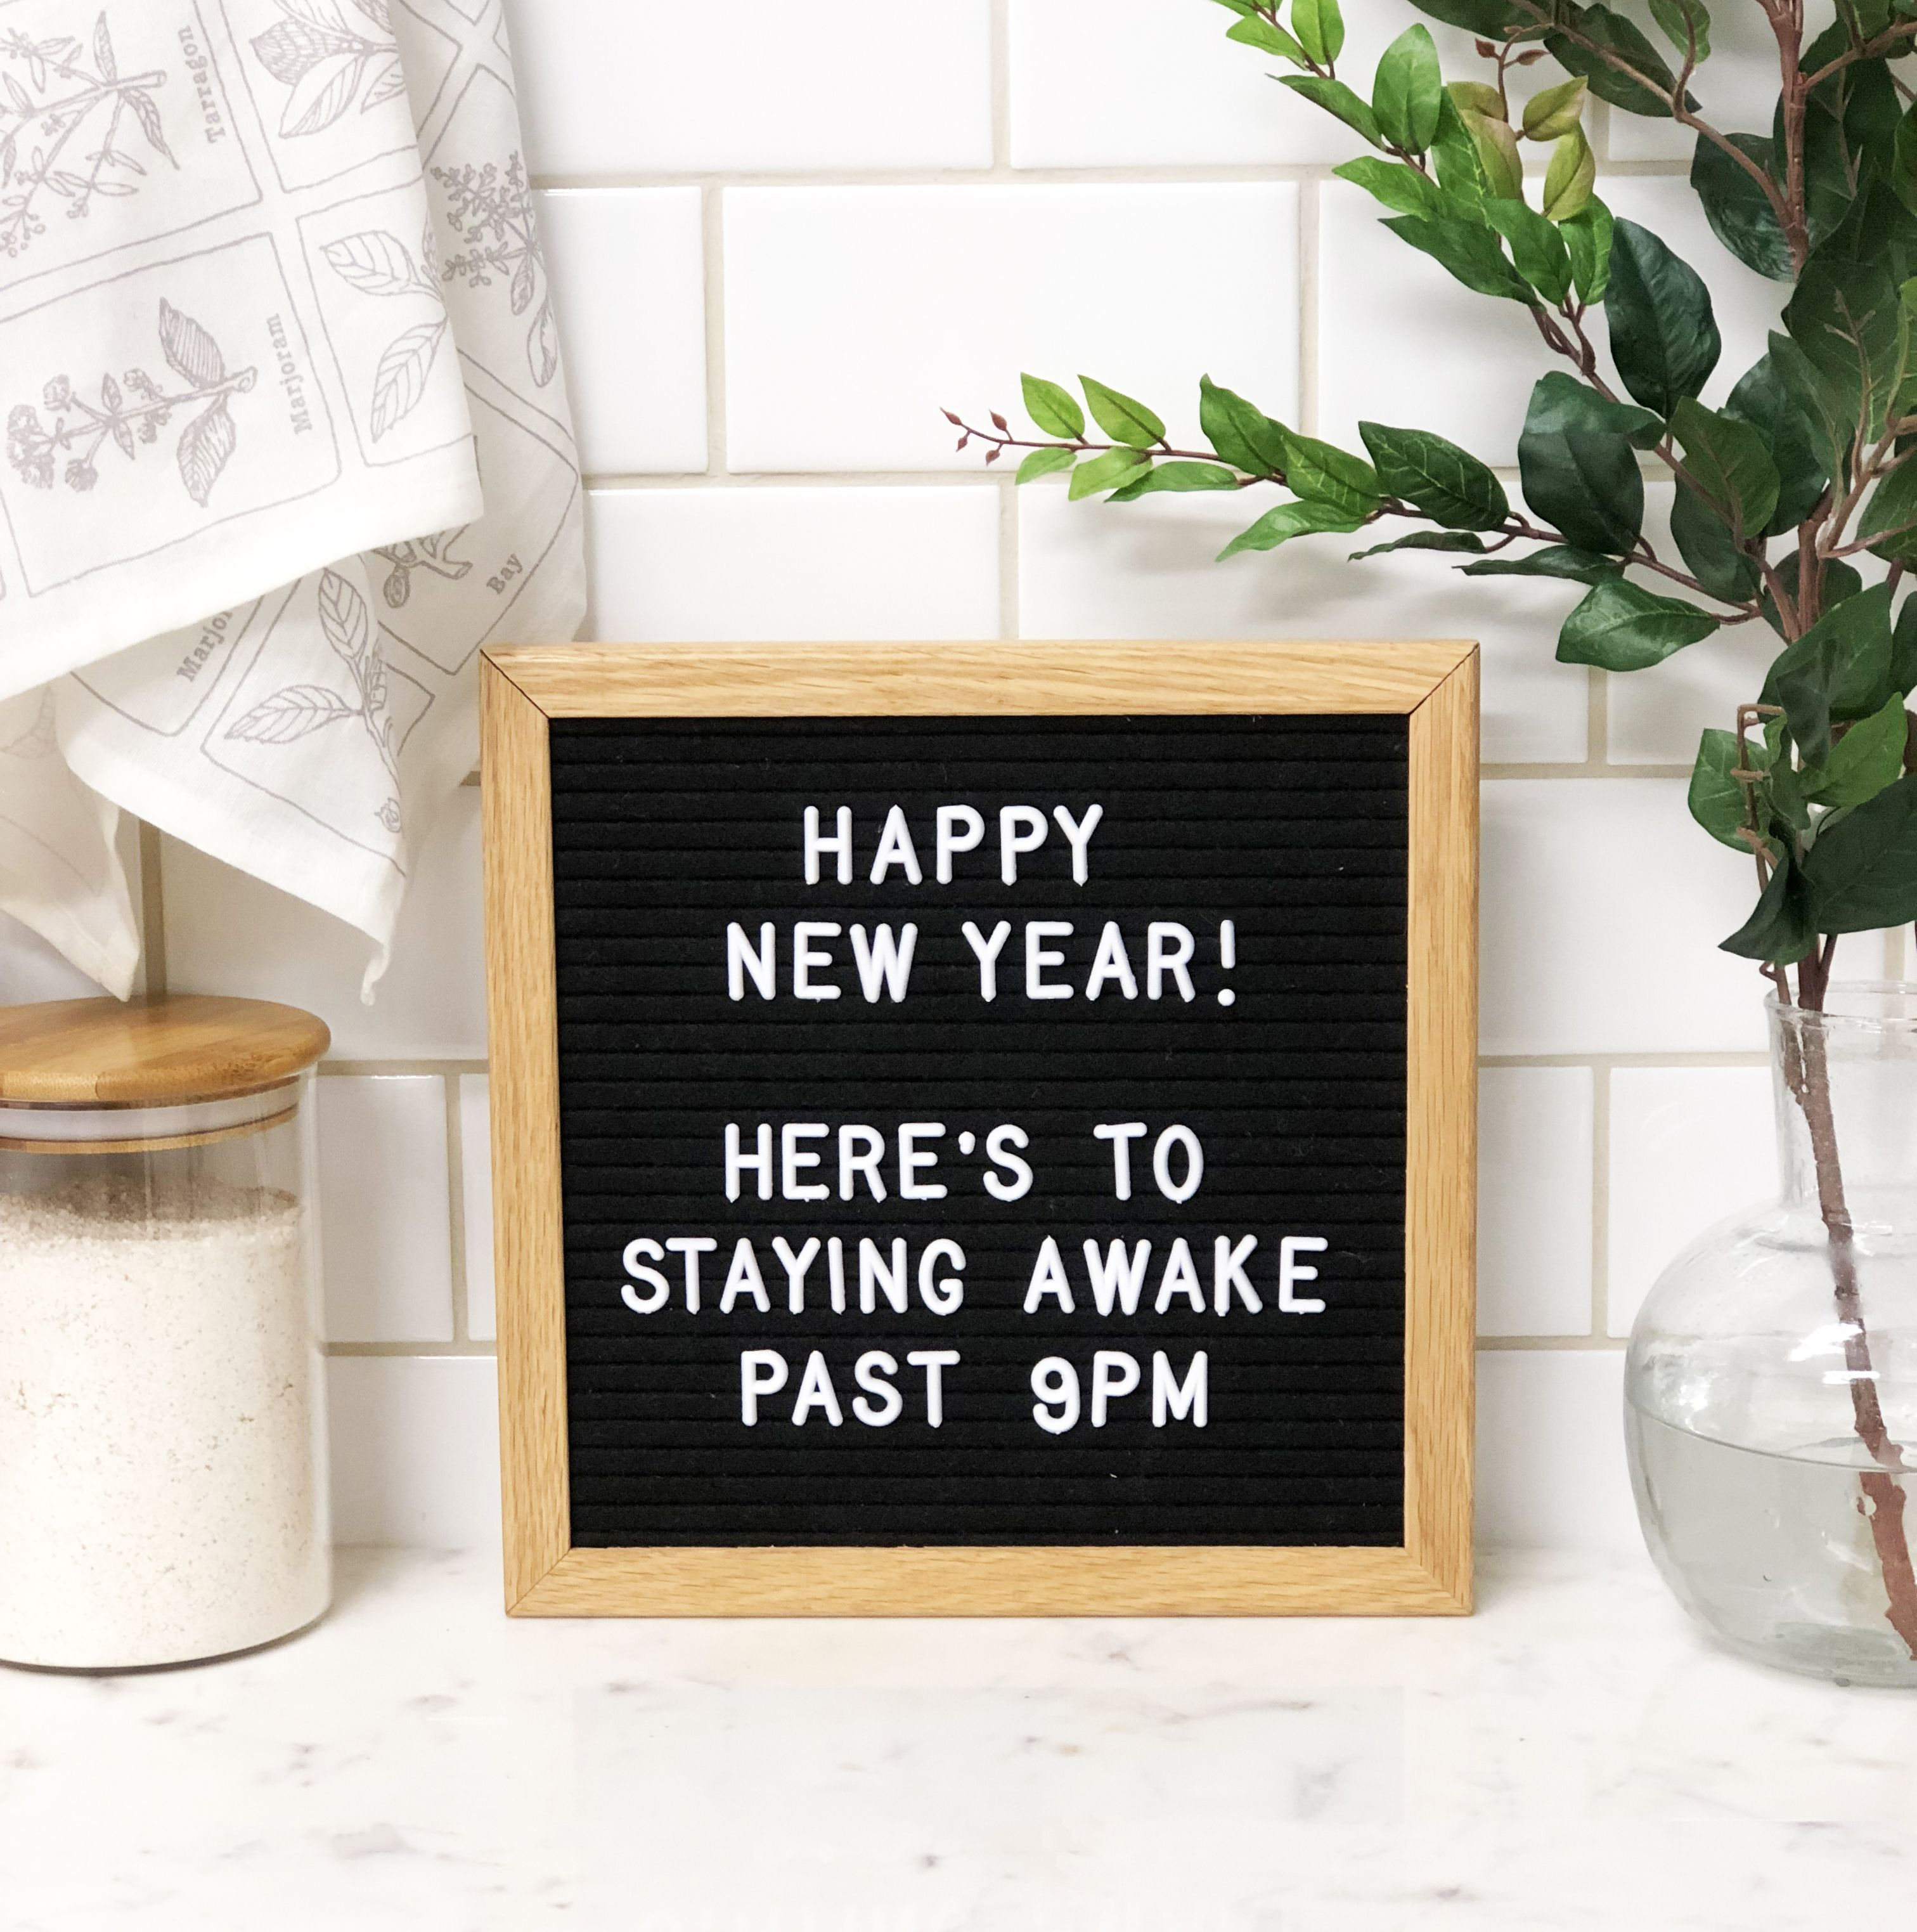 Happy New Year Funny Letter Board New Year S Eve Celebration Quote Letterboard Celebration Quotes Funny Letters Letter Board